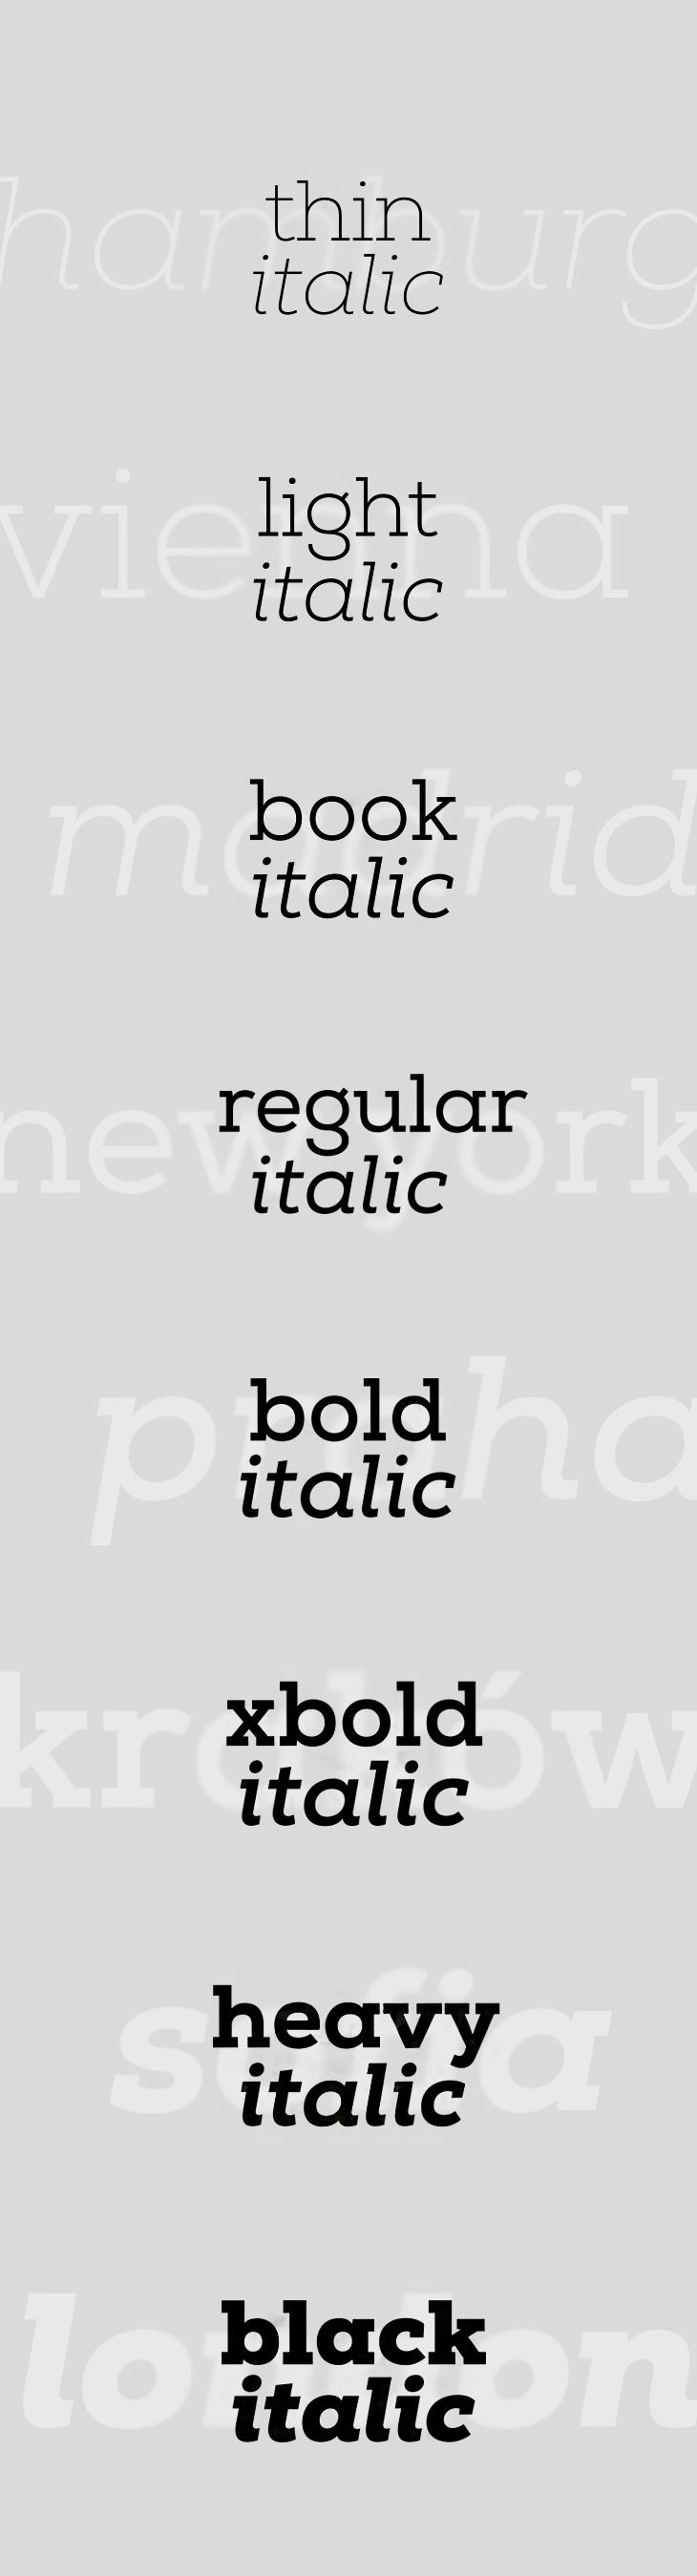 this font is a version of Slab nut it is Italic as well. I like how many ways its possible to use it such as bold or thin. This font is commonly used.